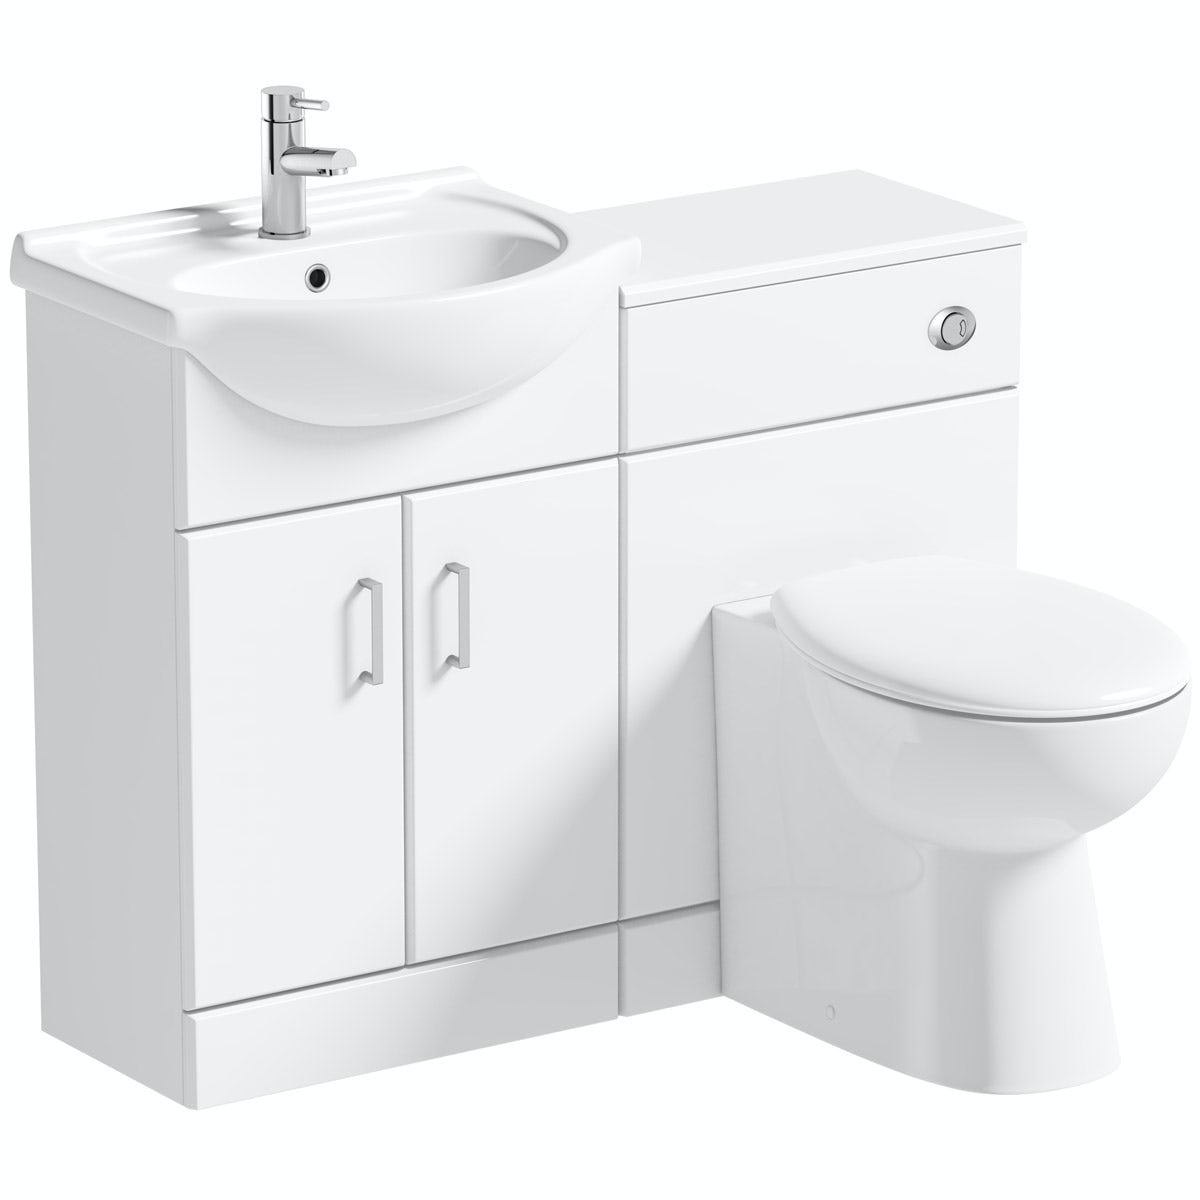 Ordinaire Orchard Eden White 1060mm Combination With Clarity Back To Wall Toilet And  Seat